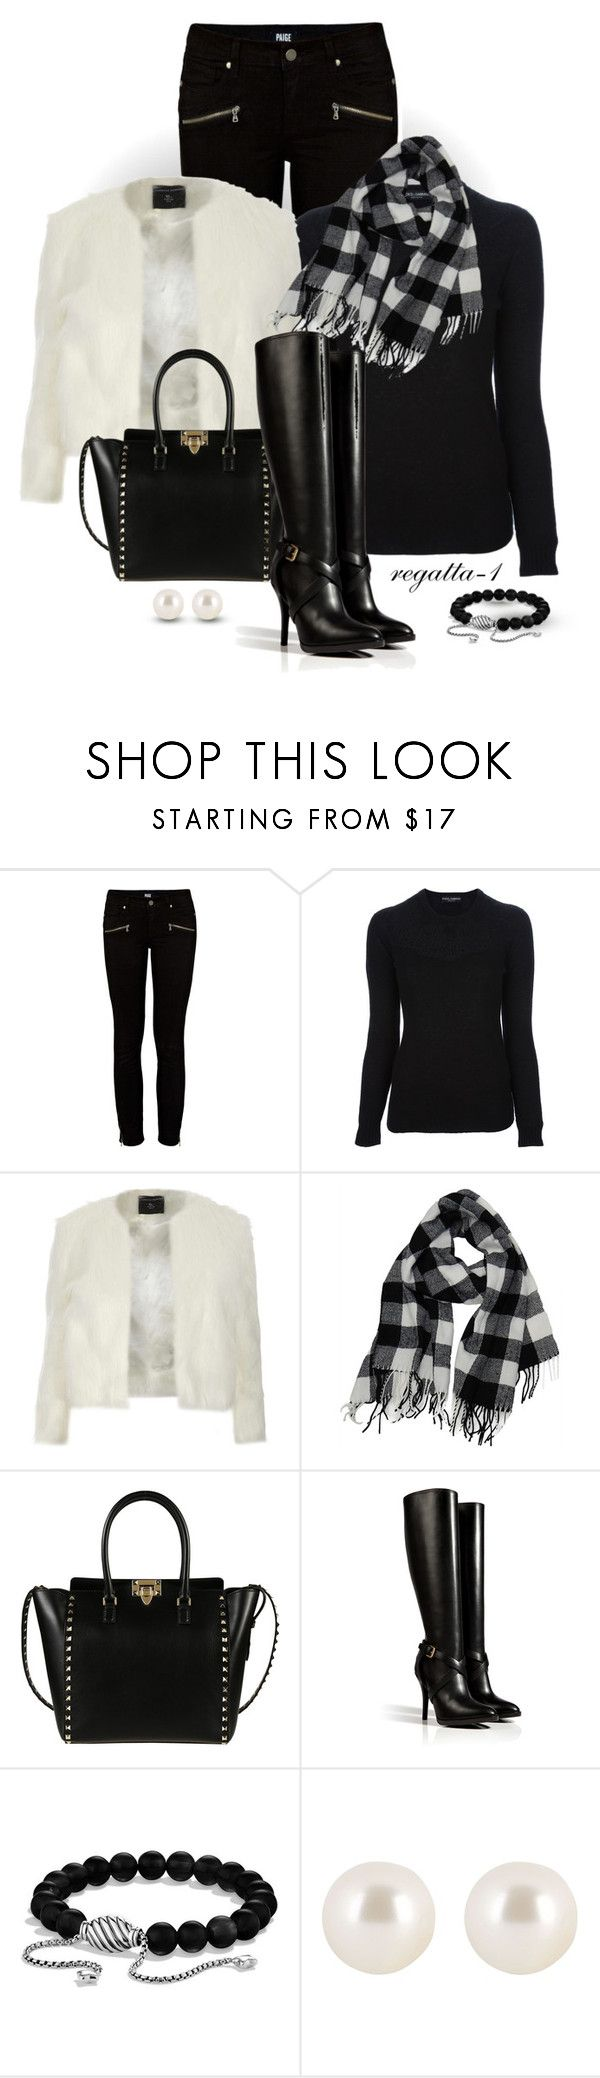 """""""Black and White"""" by regatta-1 ❤ liked on Polyvore featuring Paige Denim, Dolce&Gabbana, Dorothy Perkins, Valentino, Ralph Lauren Collection, David Yurman, Henri Bendel, white, black and fauxfur"""